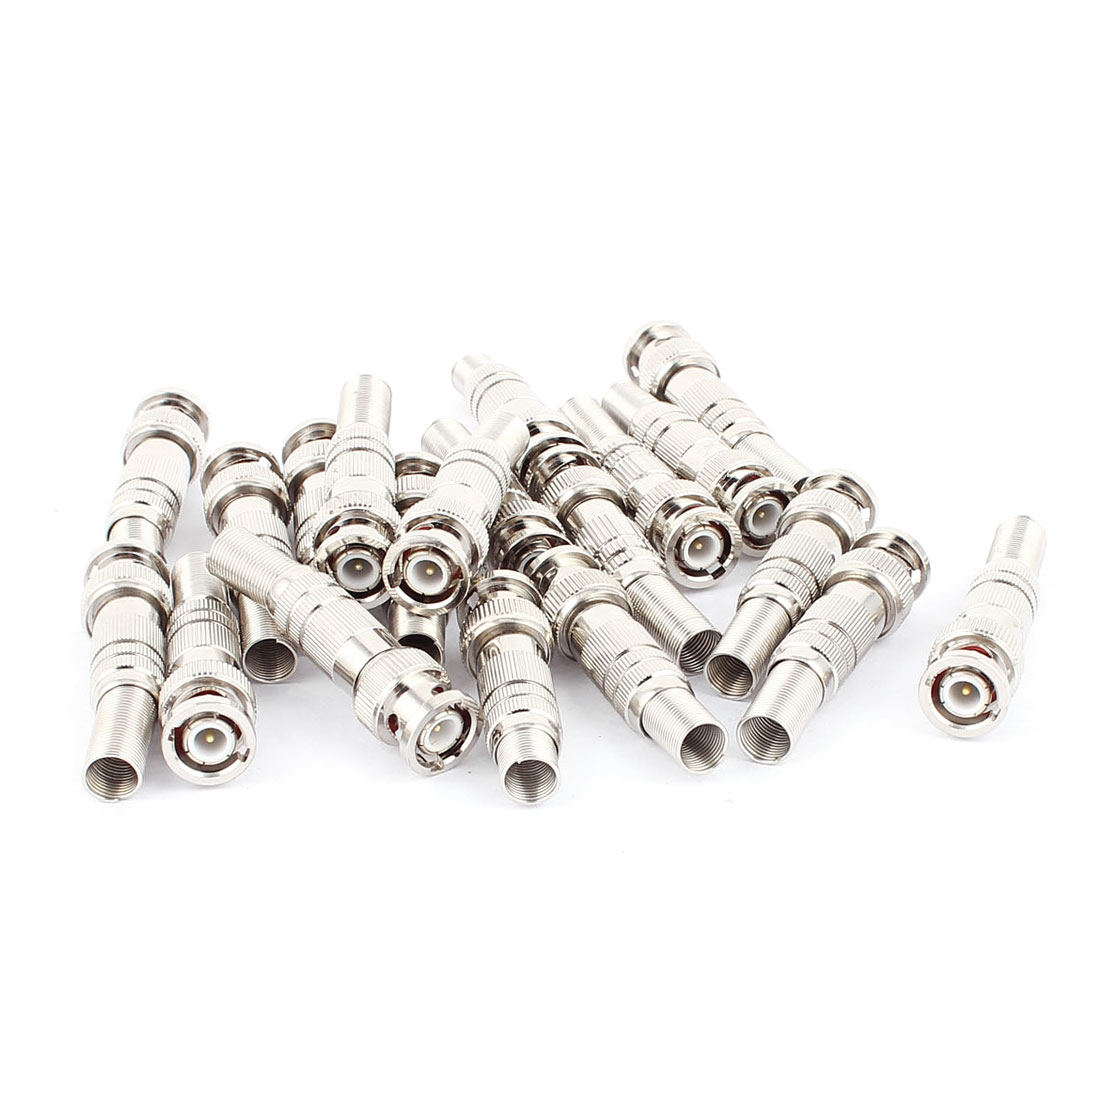 20Pcs Twist Spring Copper-plated BNC Male Adapter Connector for CCTV Camera